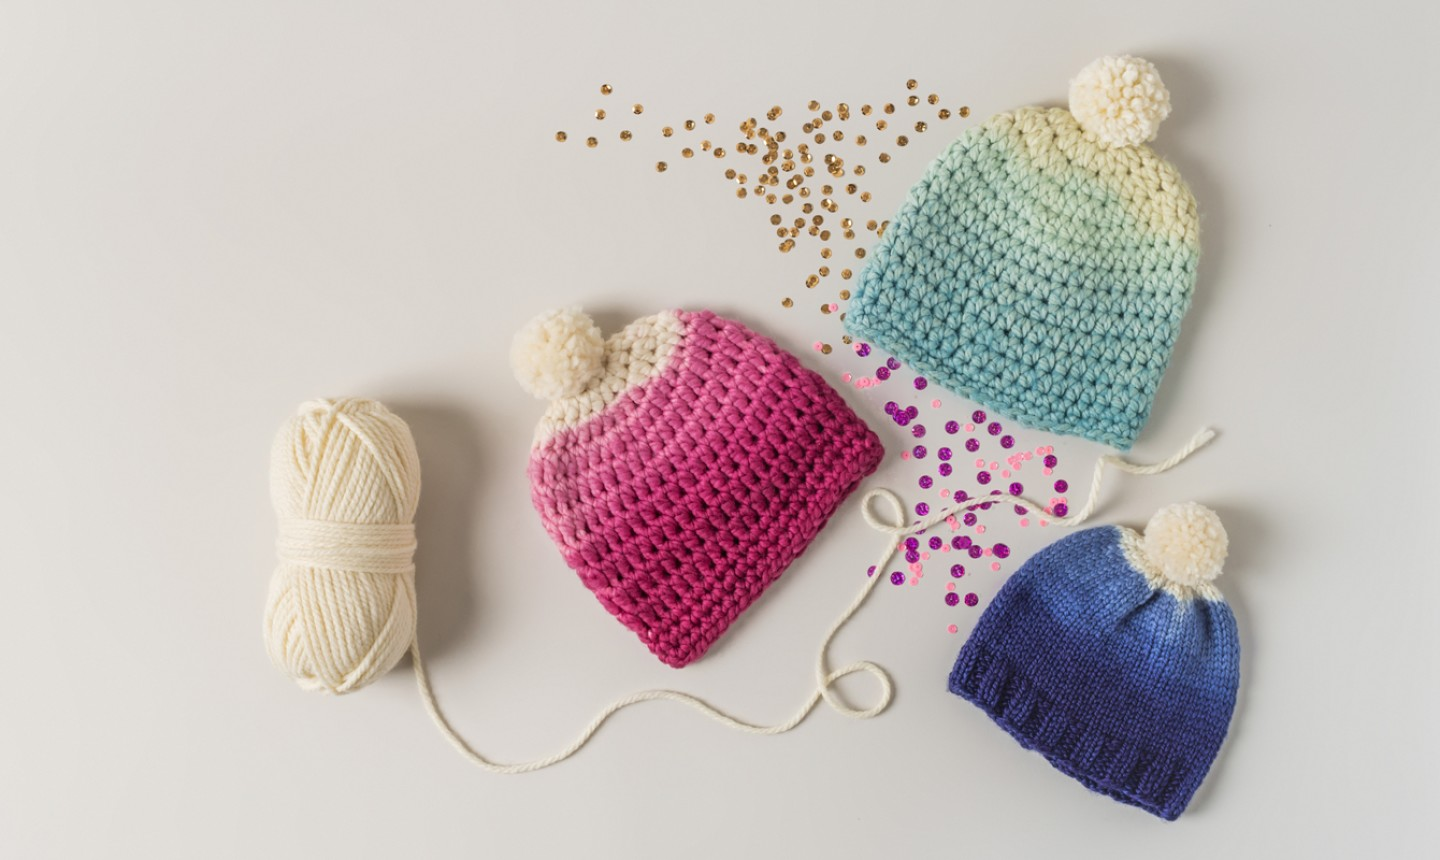 3 different color dyed hats